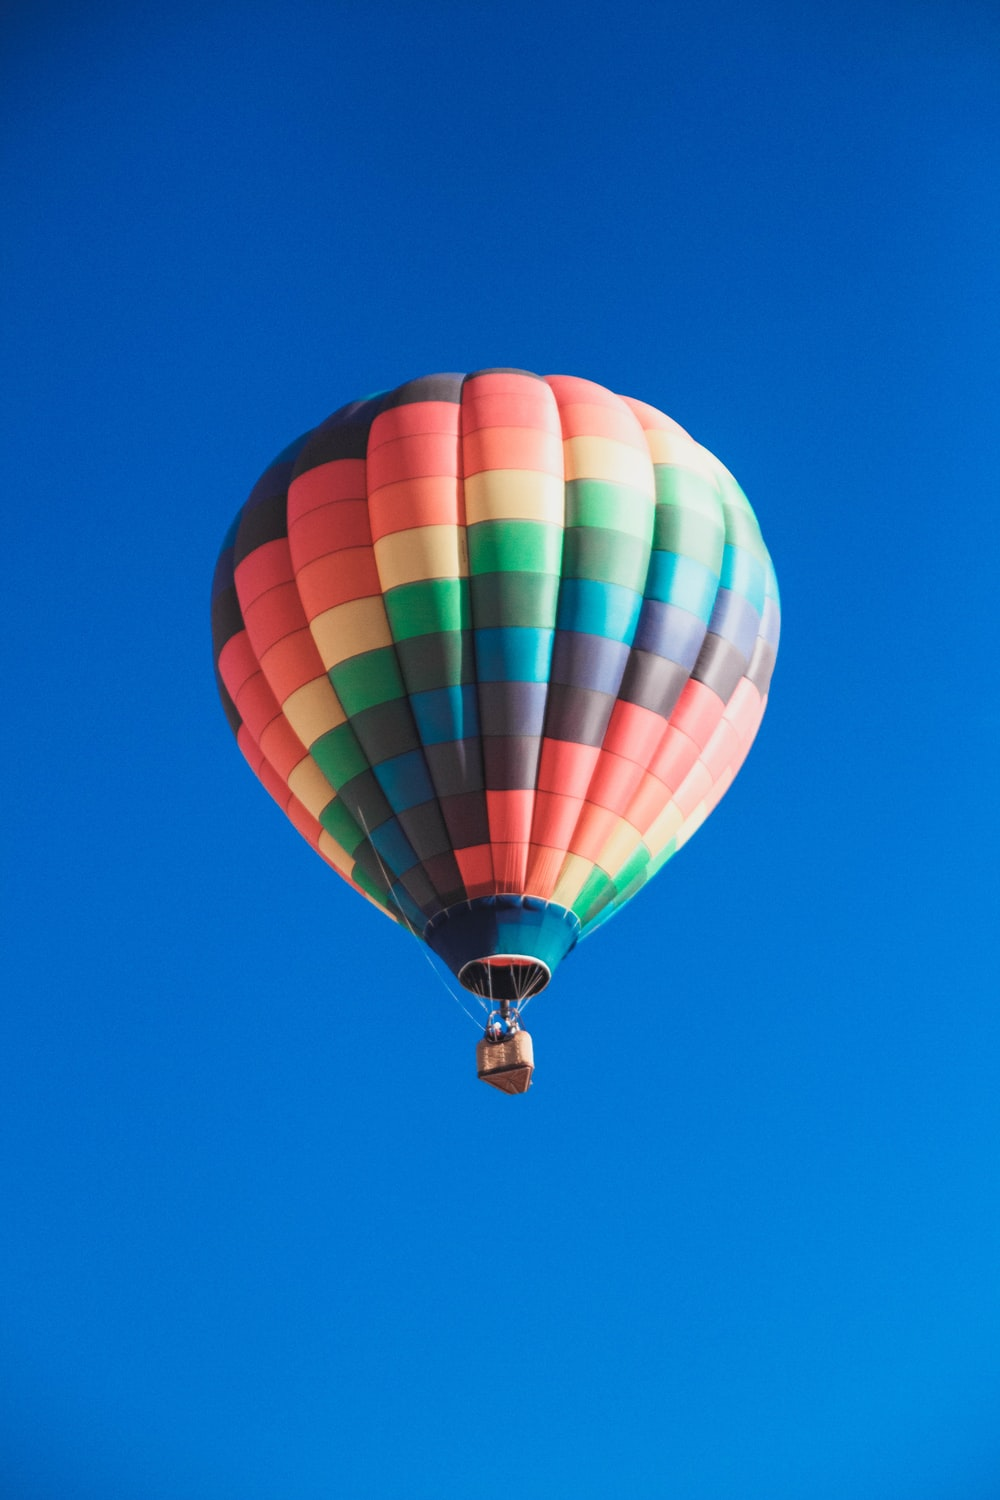 worm's eye view photography of multicolored hot air balloon